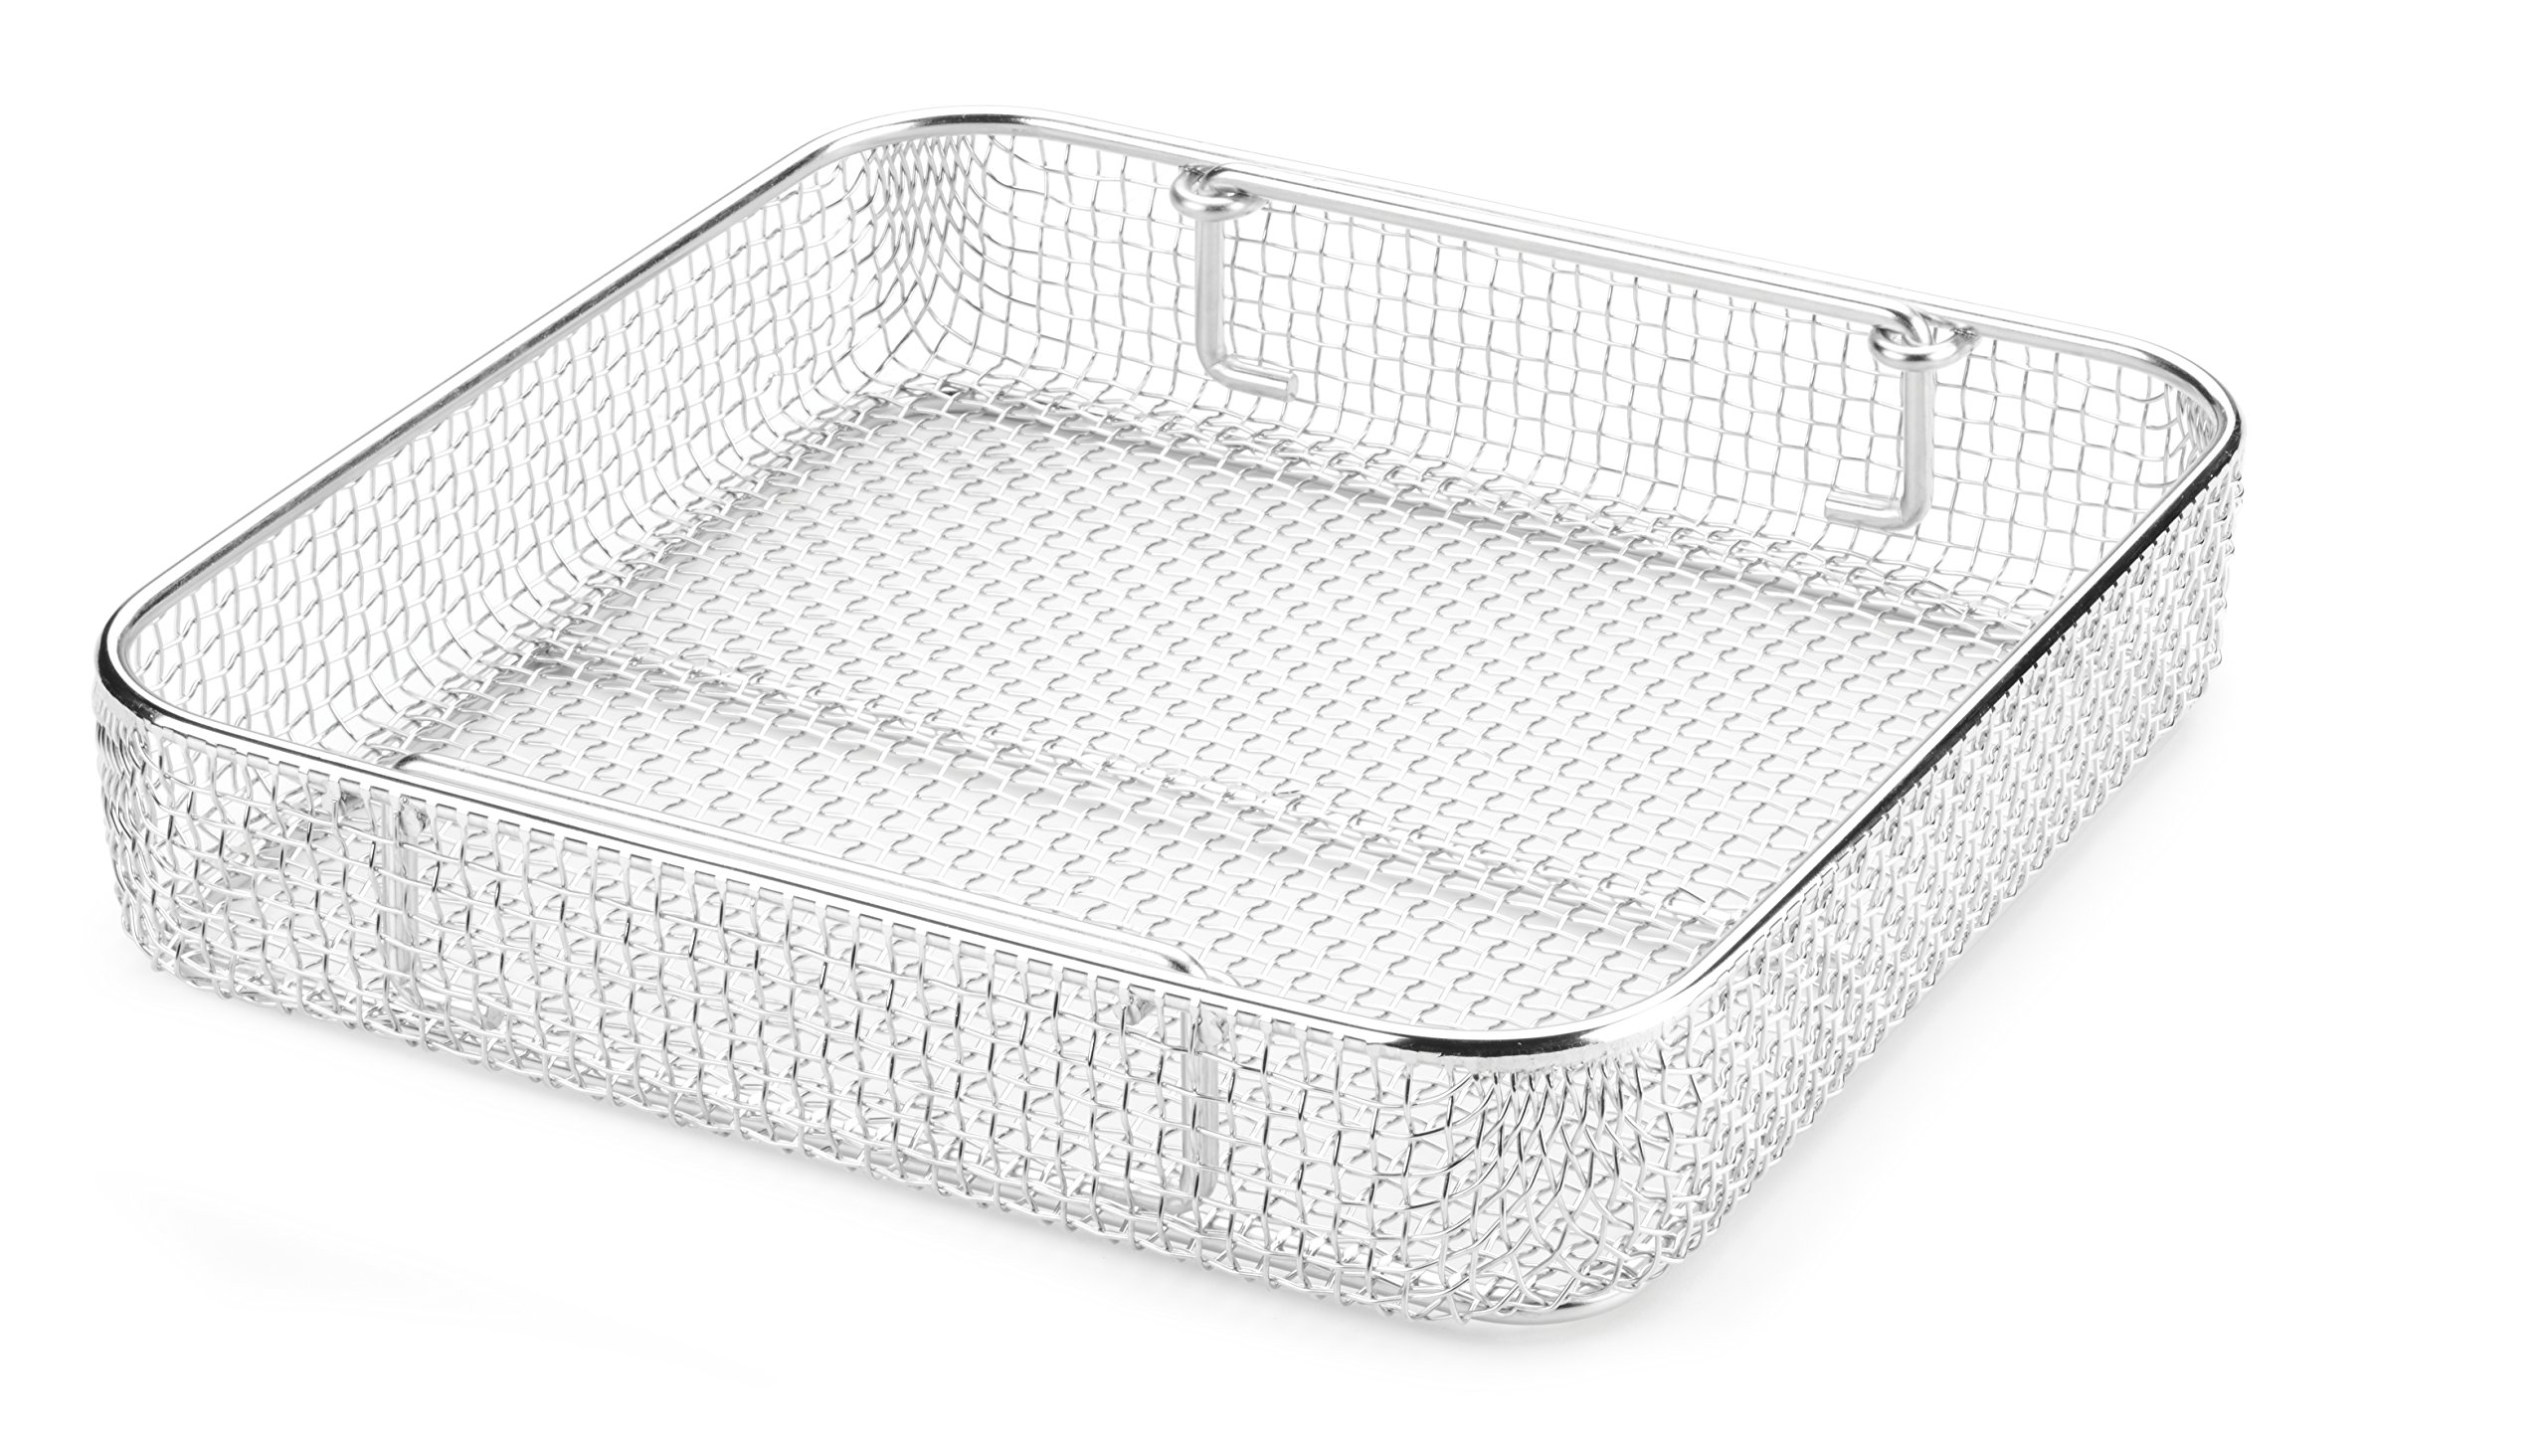 Key Surgical MT-9100 Mesh Tray with Drop Handles, Stainless Steel, 250 mm x 250 mm x 50 mm